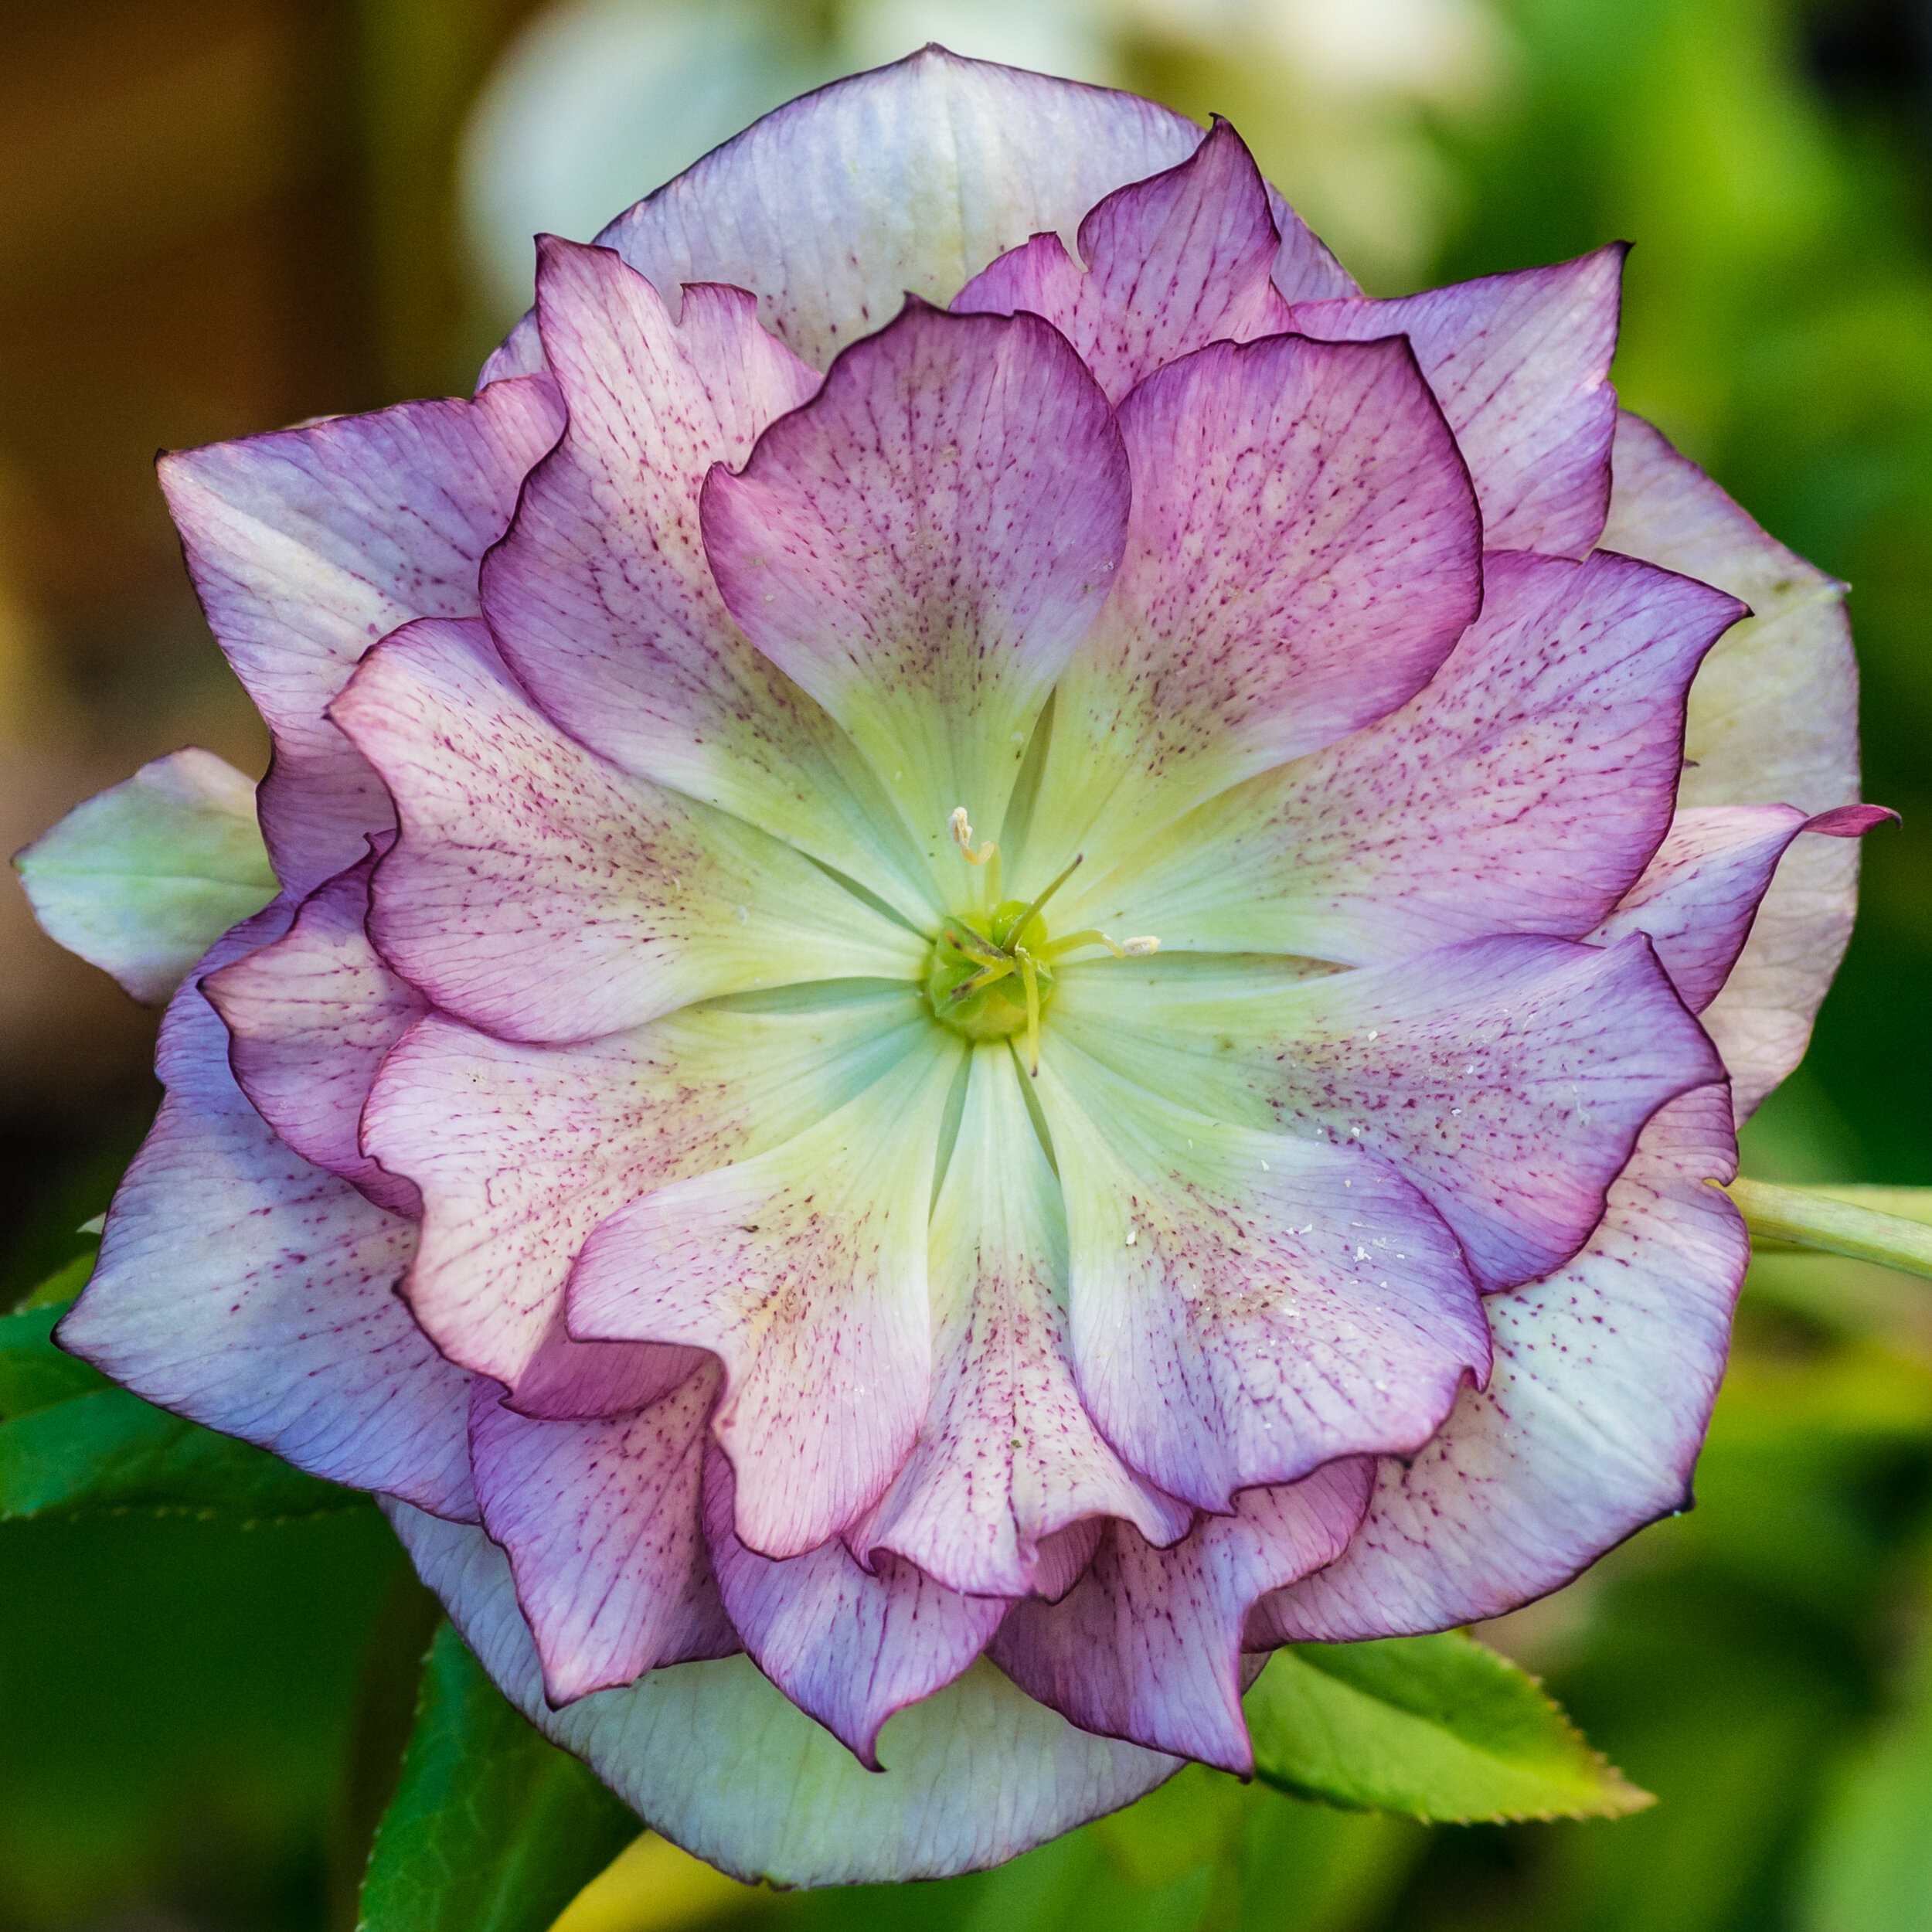 Hellebores are the perfect perennial. They prefer dry shade, are evergreen and bloom in January, holding their bloom through March and even into April. They make an excellent groundcover. Check out how easy they are to grow   here  .